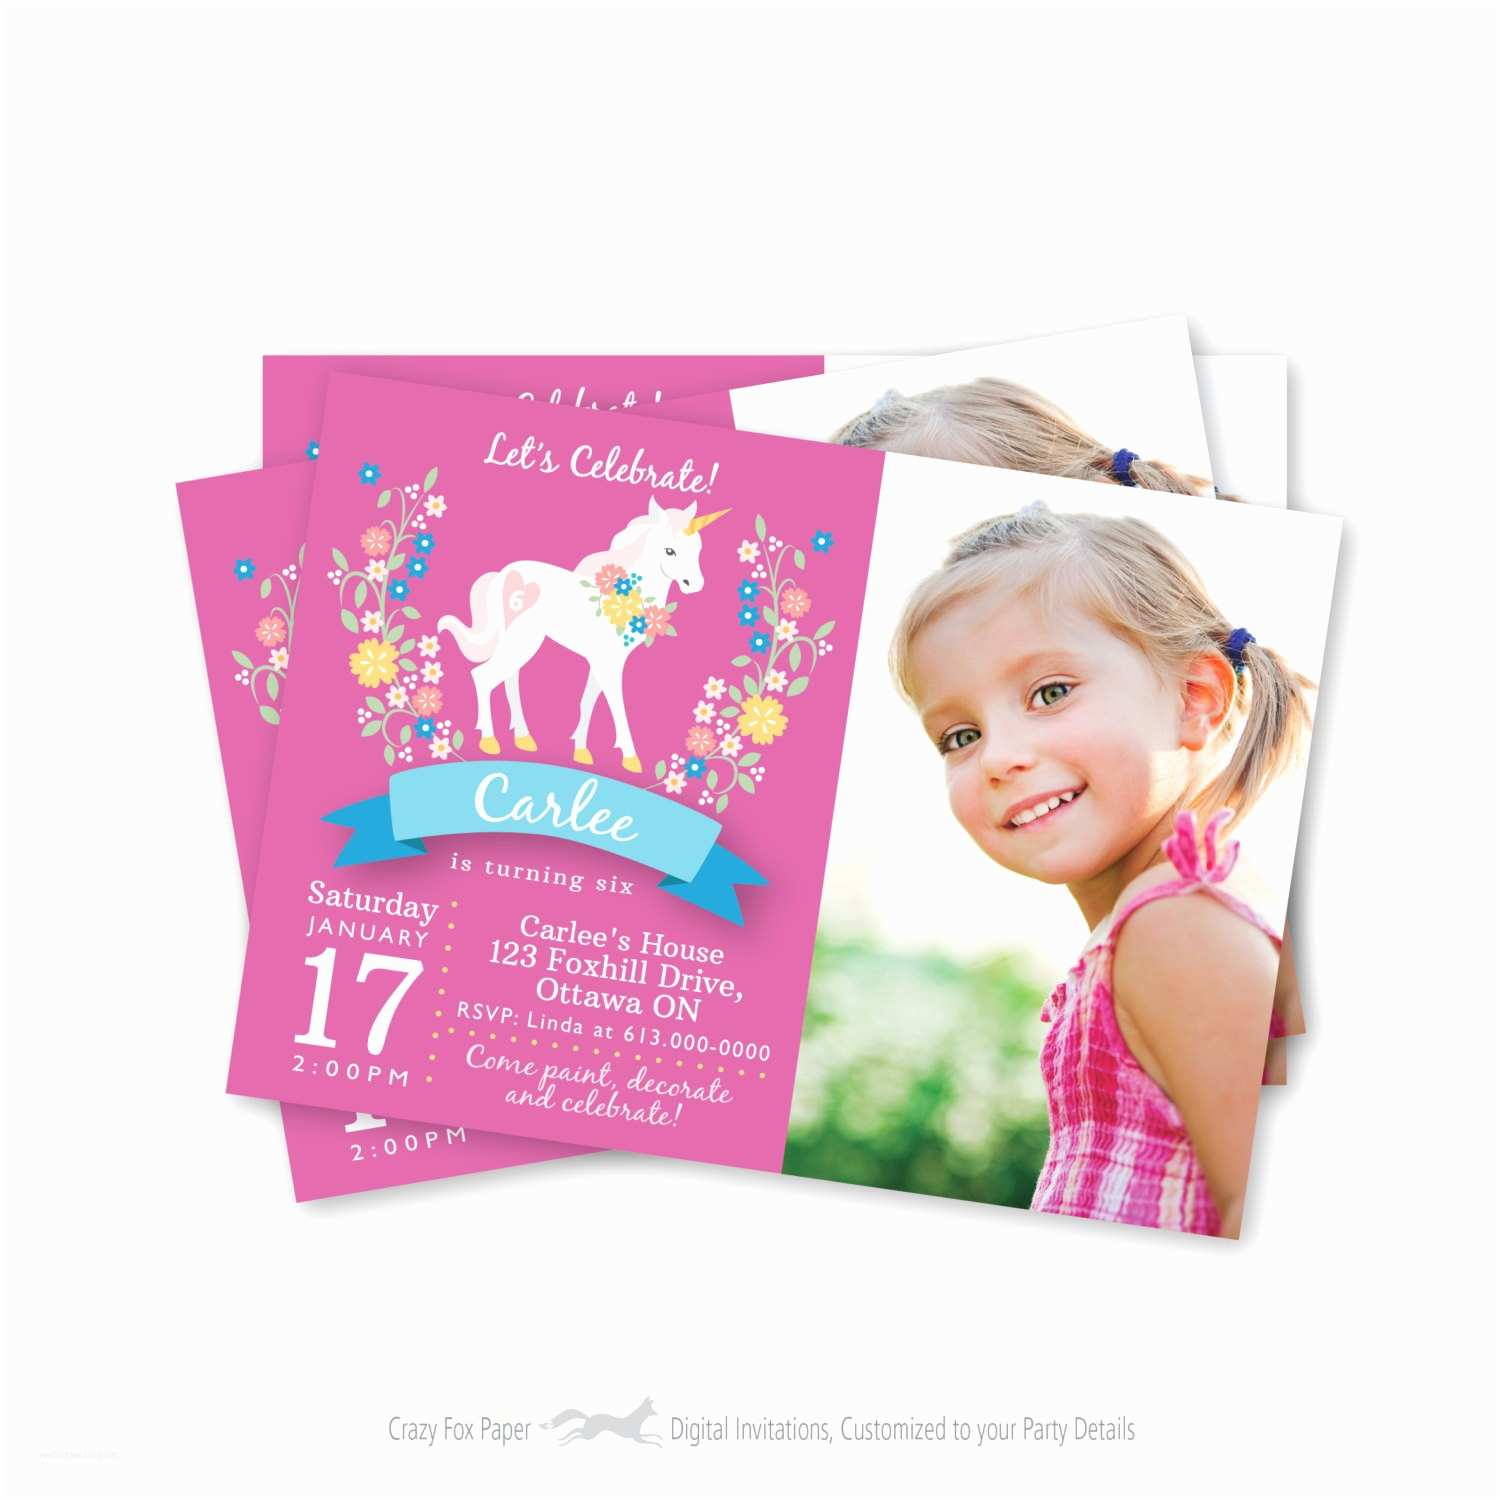 Customized Birthday Invitations Personalized Invitations Matik for